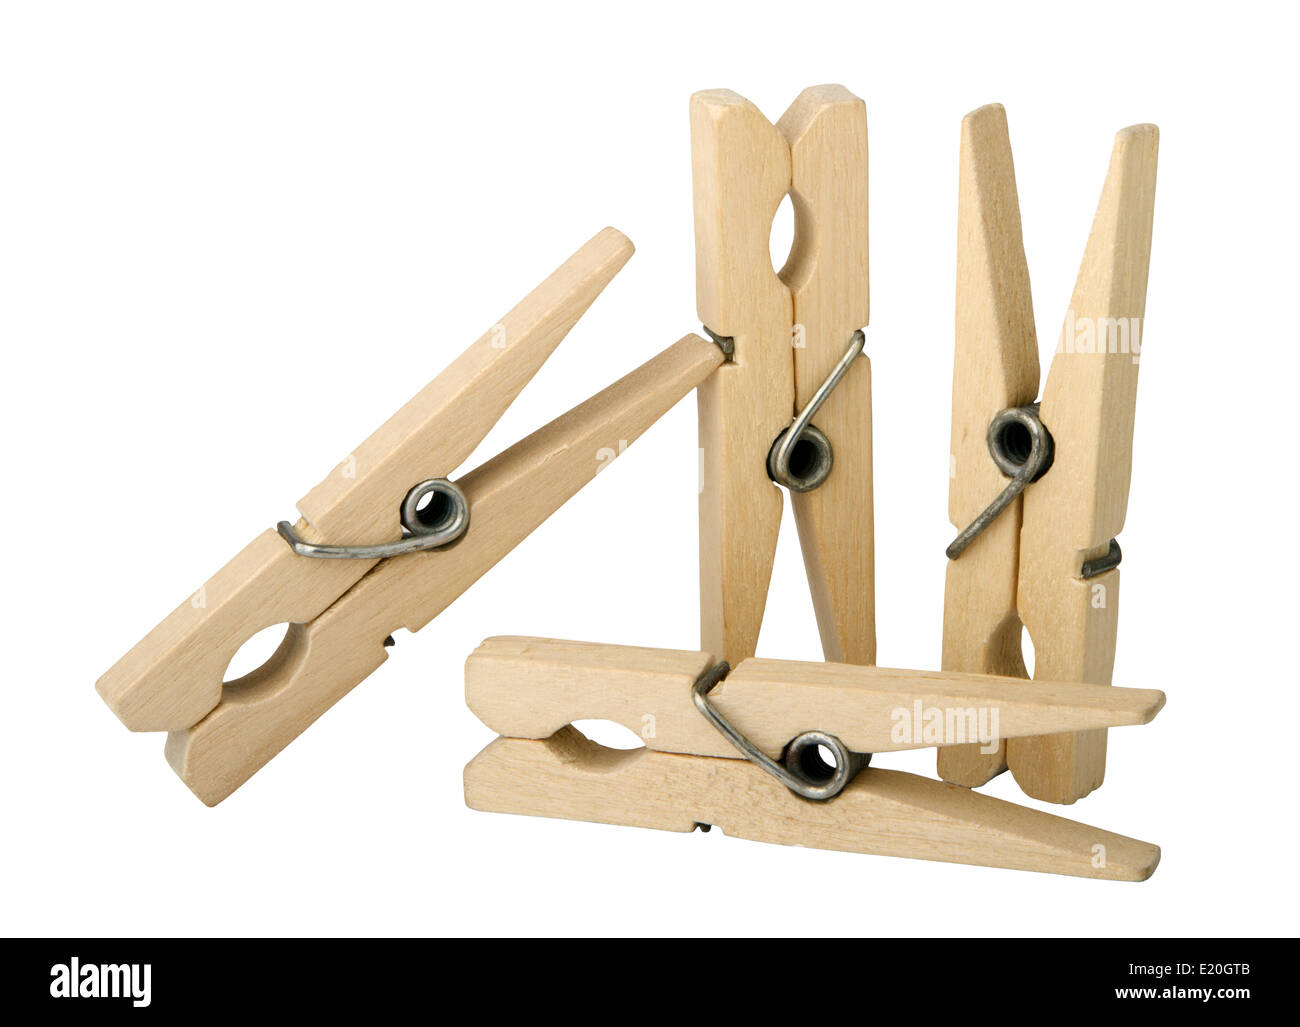 wooden clothes pins - Stock Image